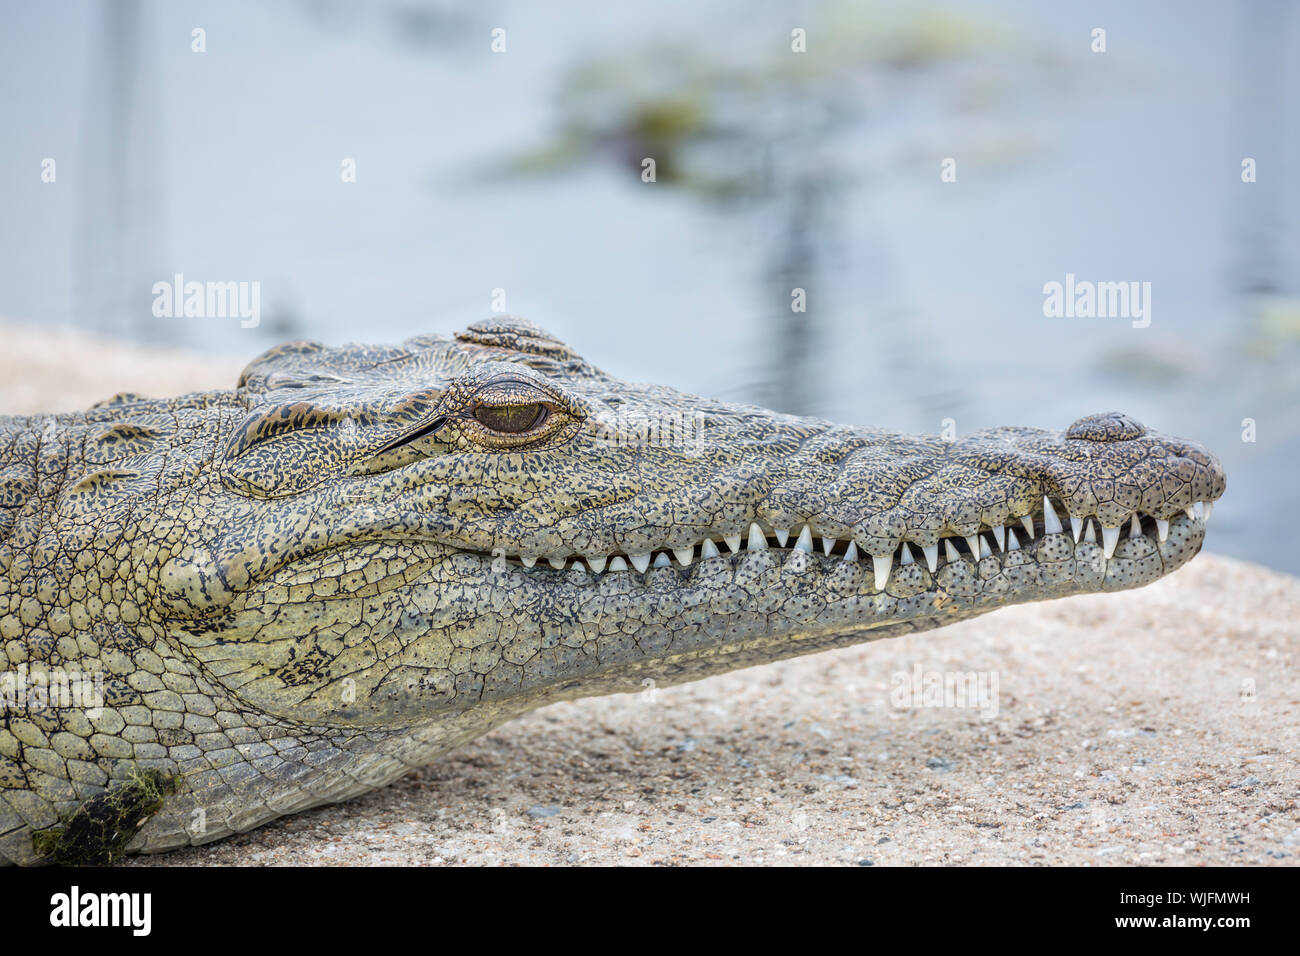 Nile crocodile portrait in Kruger National park, South Africa ; Specie Crocodylus niloticus family of Crocodylidae Stock Photo